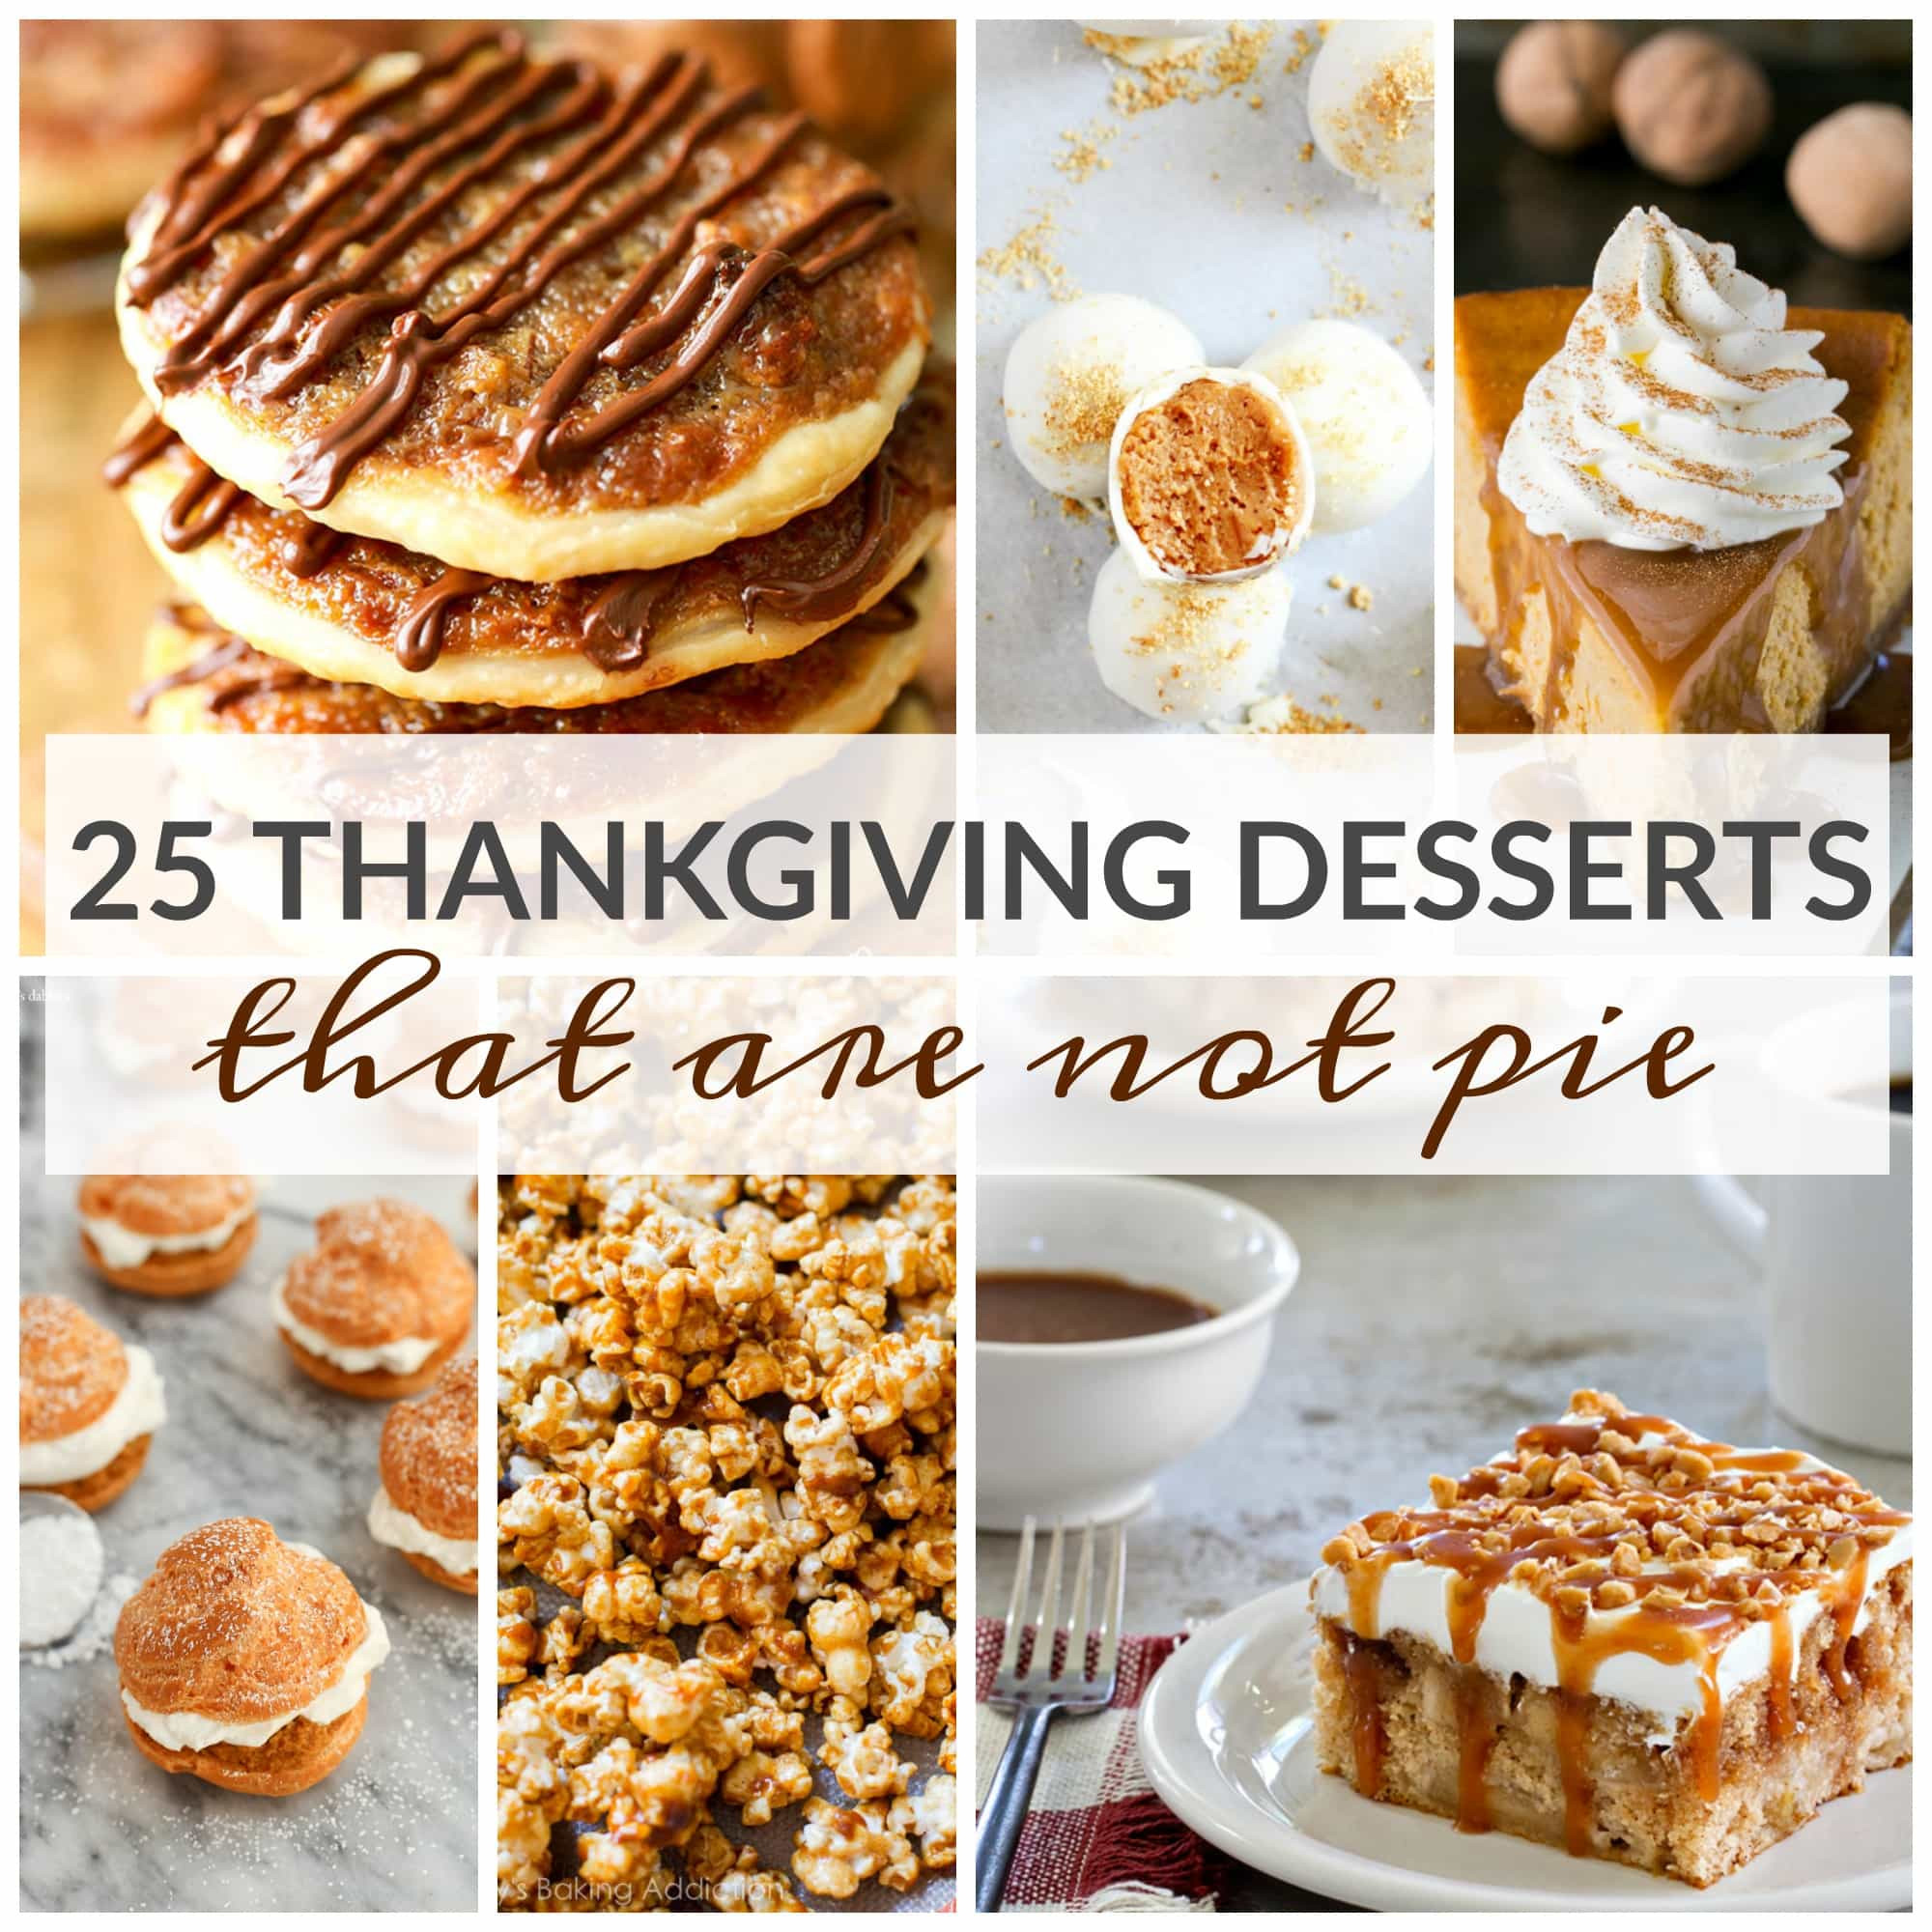 Holiday Desserts Thanksgiving  25 Thanksgiving Desserts That Are Not Pie A Dash of Sanity